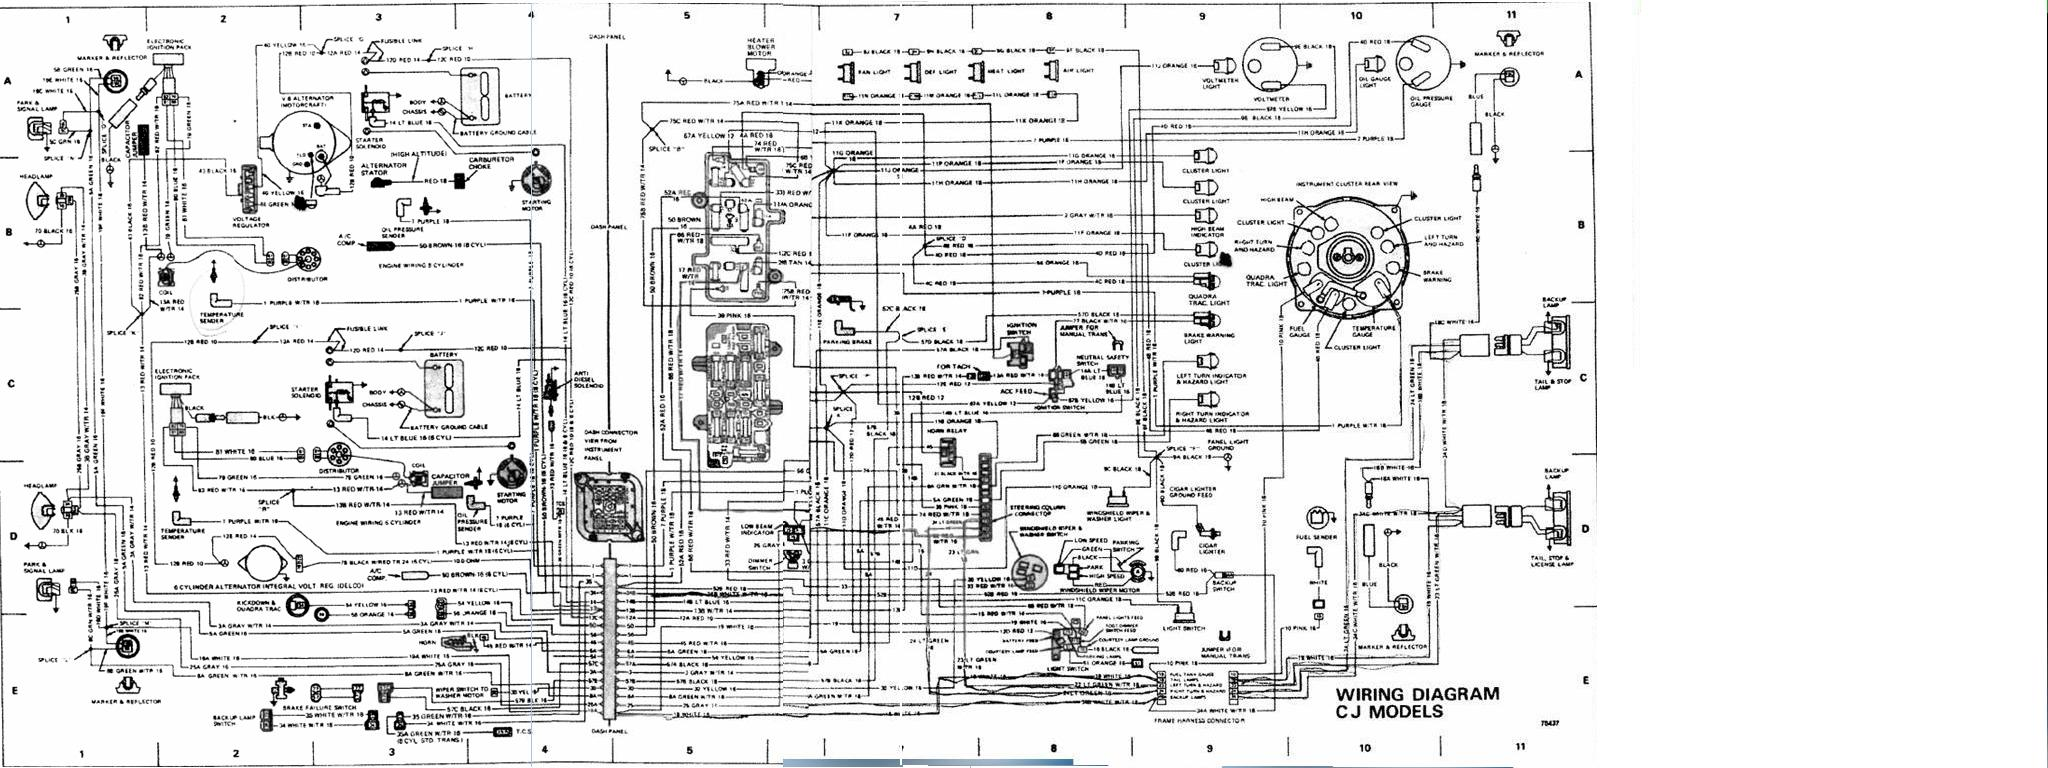 Cj7 Turn Signal Wiring Diagram - Wiring Diagrams Lol  Dodge Ram Reverse Light Wiring Diagram on 01 dodge ram vacuum routing, 01 dodge ram brakes, 01 dodge ram firing order, 01 dodge ram seats, dodge ram 1500 diagram, dodge ram electrical diagram, dodge infinity wiring diagram, 01 dodge ram sub box, 01 mitsubishi eclipse wiring diagram, 01 kia rio wiring diagram, 1984 dodge d150 wiring diagram, 01 dodge ram headlights, 1985 dodge d150 wiring diagram, 01 dodge ram wiper motor, 01 dodge ram water pump, 01 opel astra wiring diagram, dodge ignition wiring diagram, dodge pickup wiring diagram, 01 lincoln continental wiring diagram, 01 ford windstar wiring diagram,